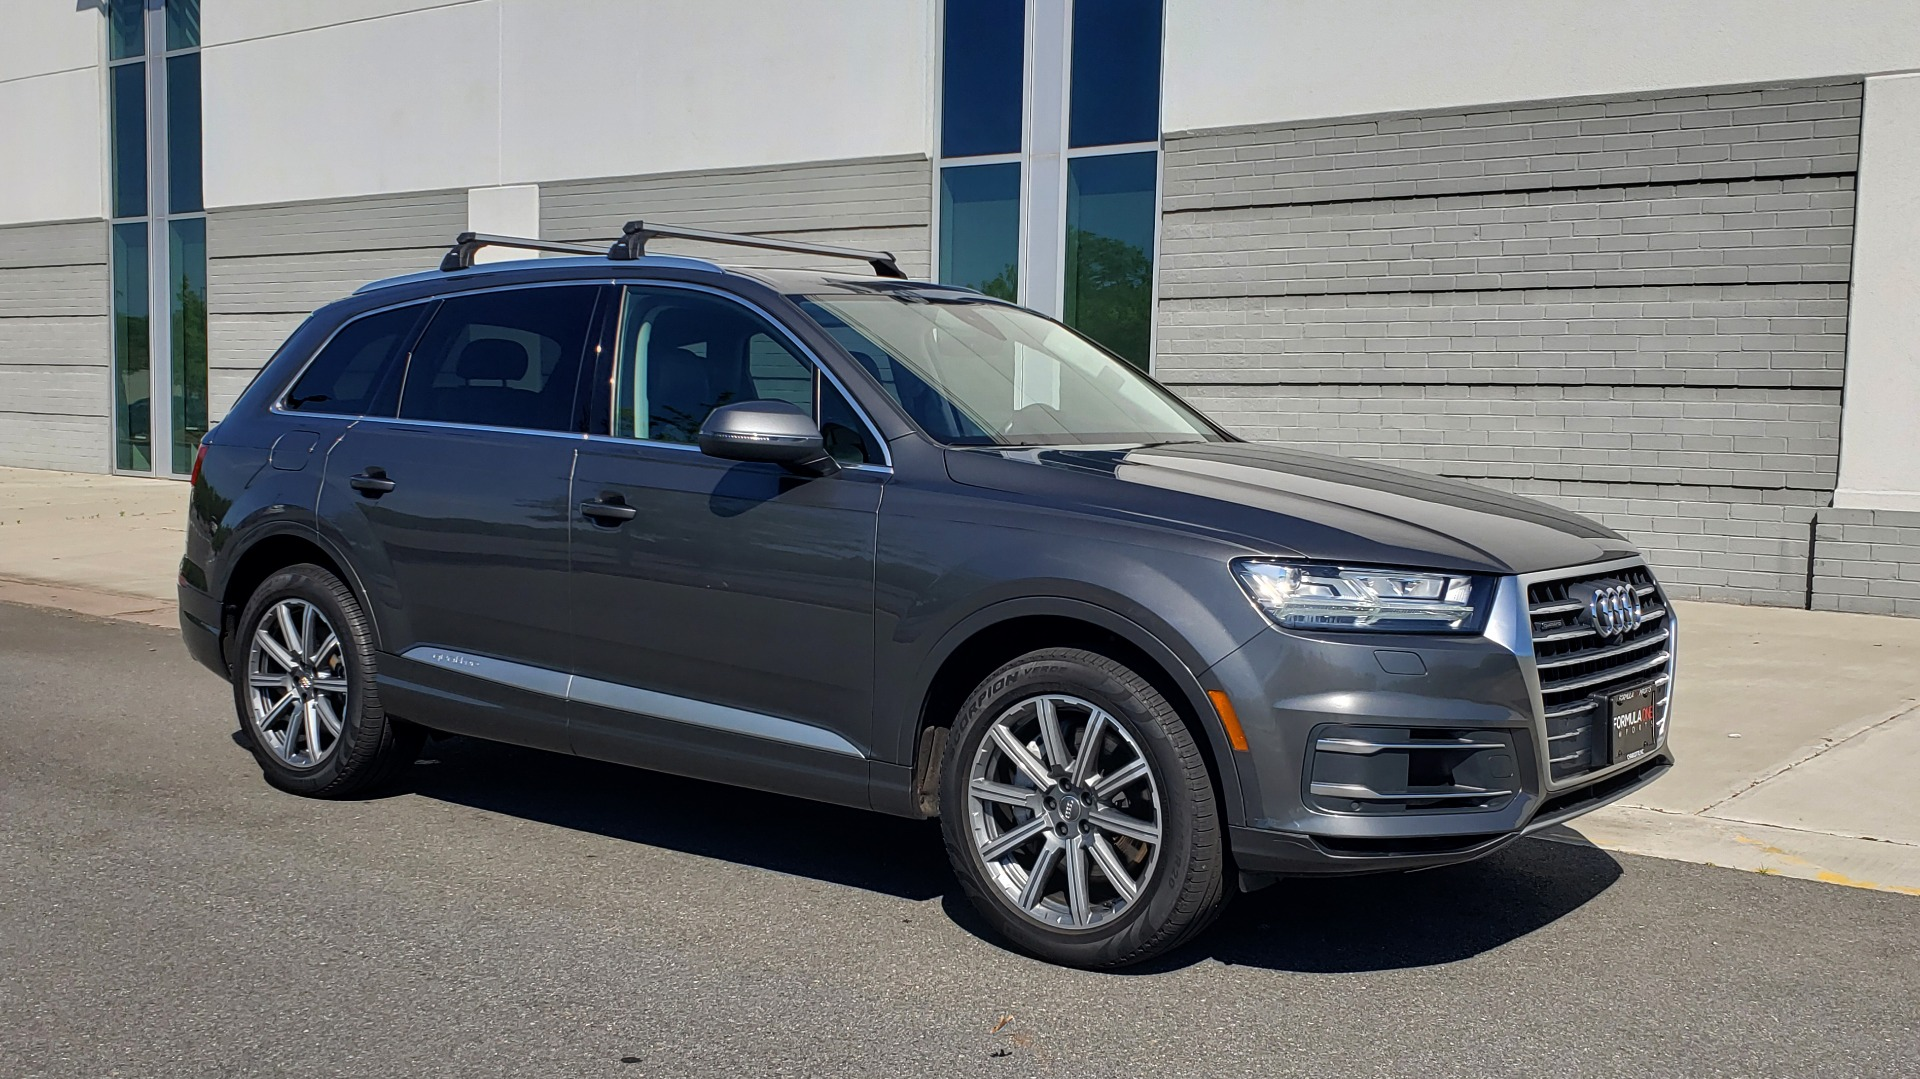 Used 2018 Audi Q7 PREMIUM PLUS TIPTRONIC / NAV / SUNROOF / VISION PKG / CLD WTHR / REARVIEW for sale $44,395 at Formula Imports in Charlotte NC 28227 6